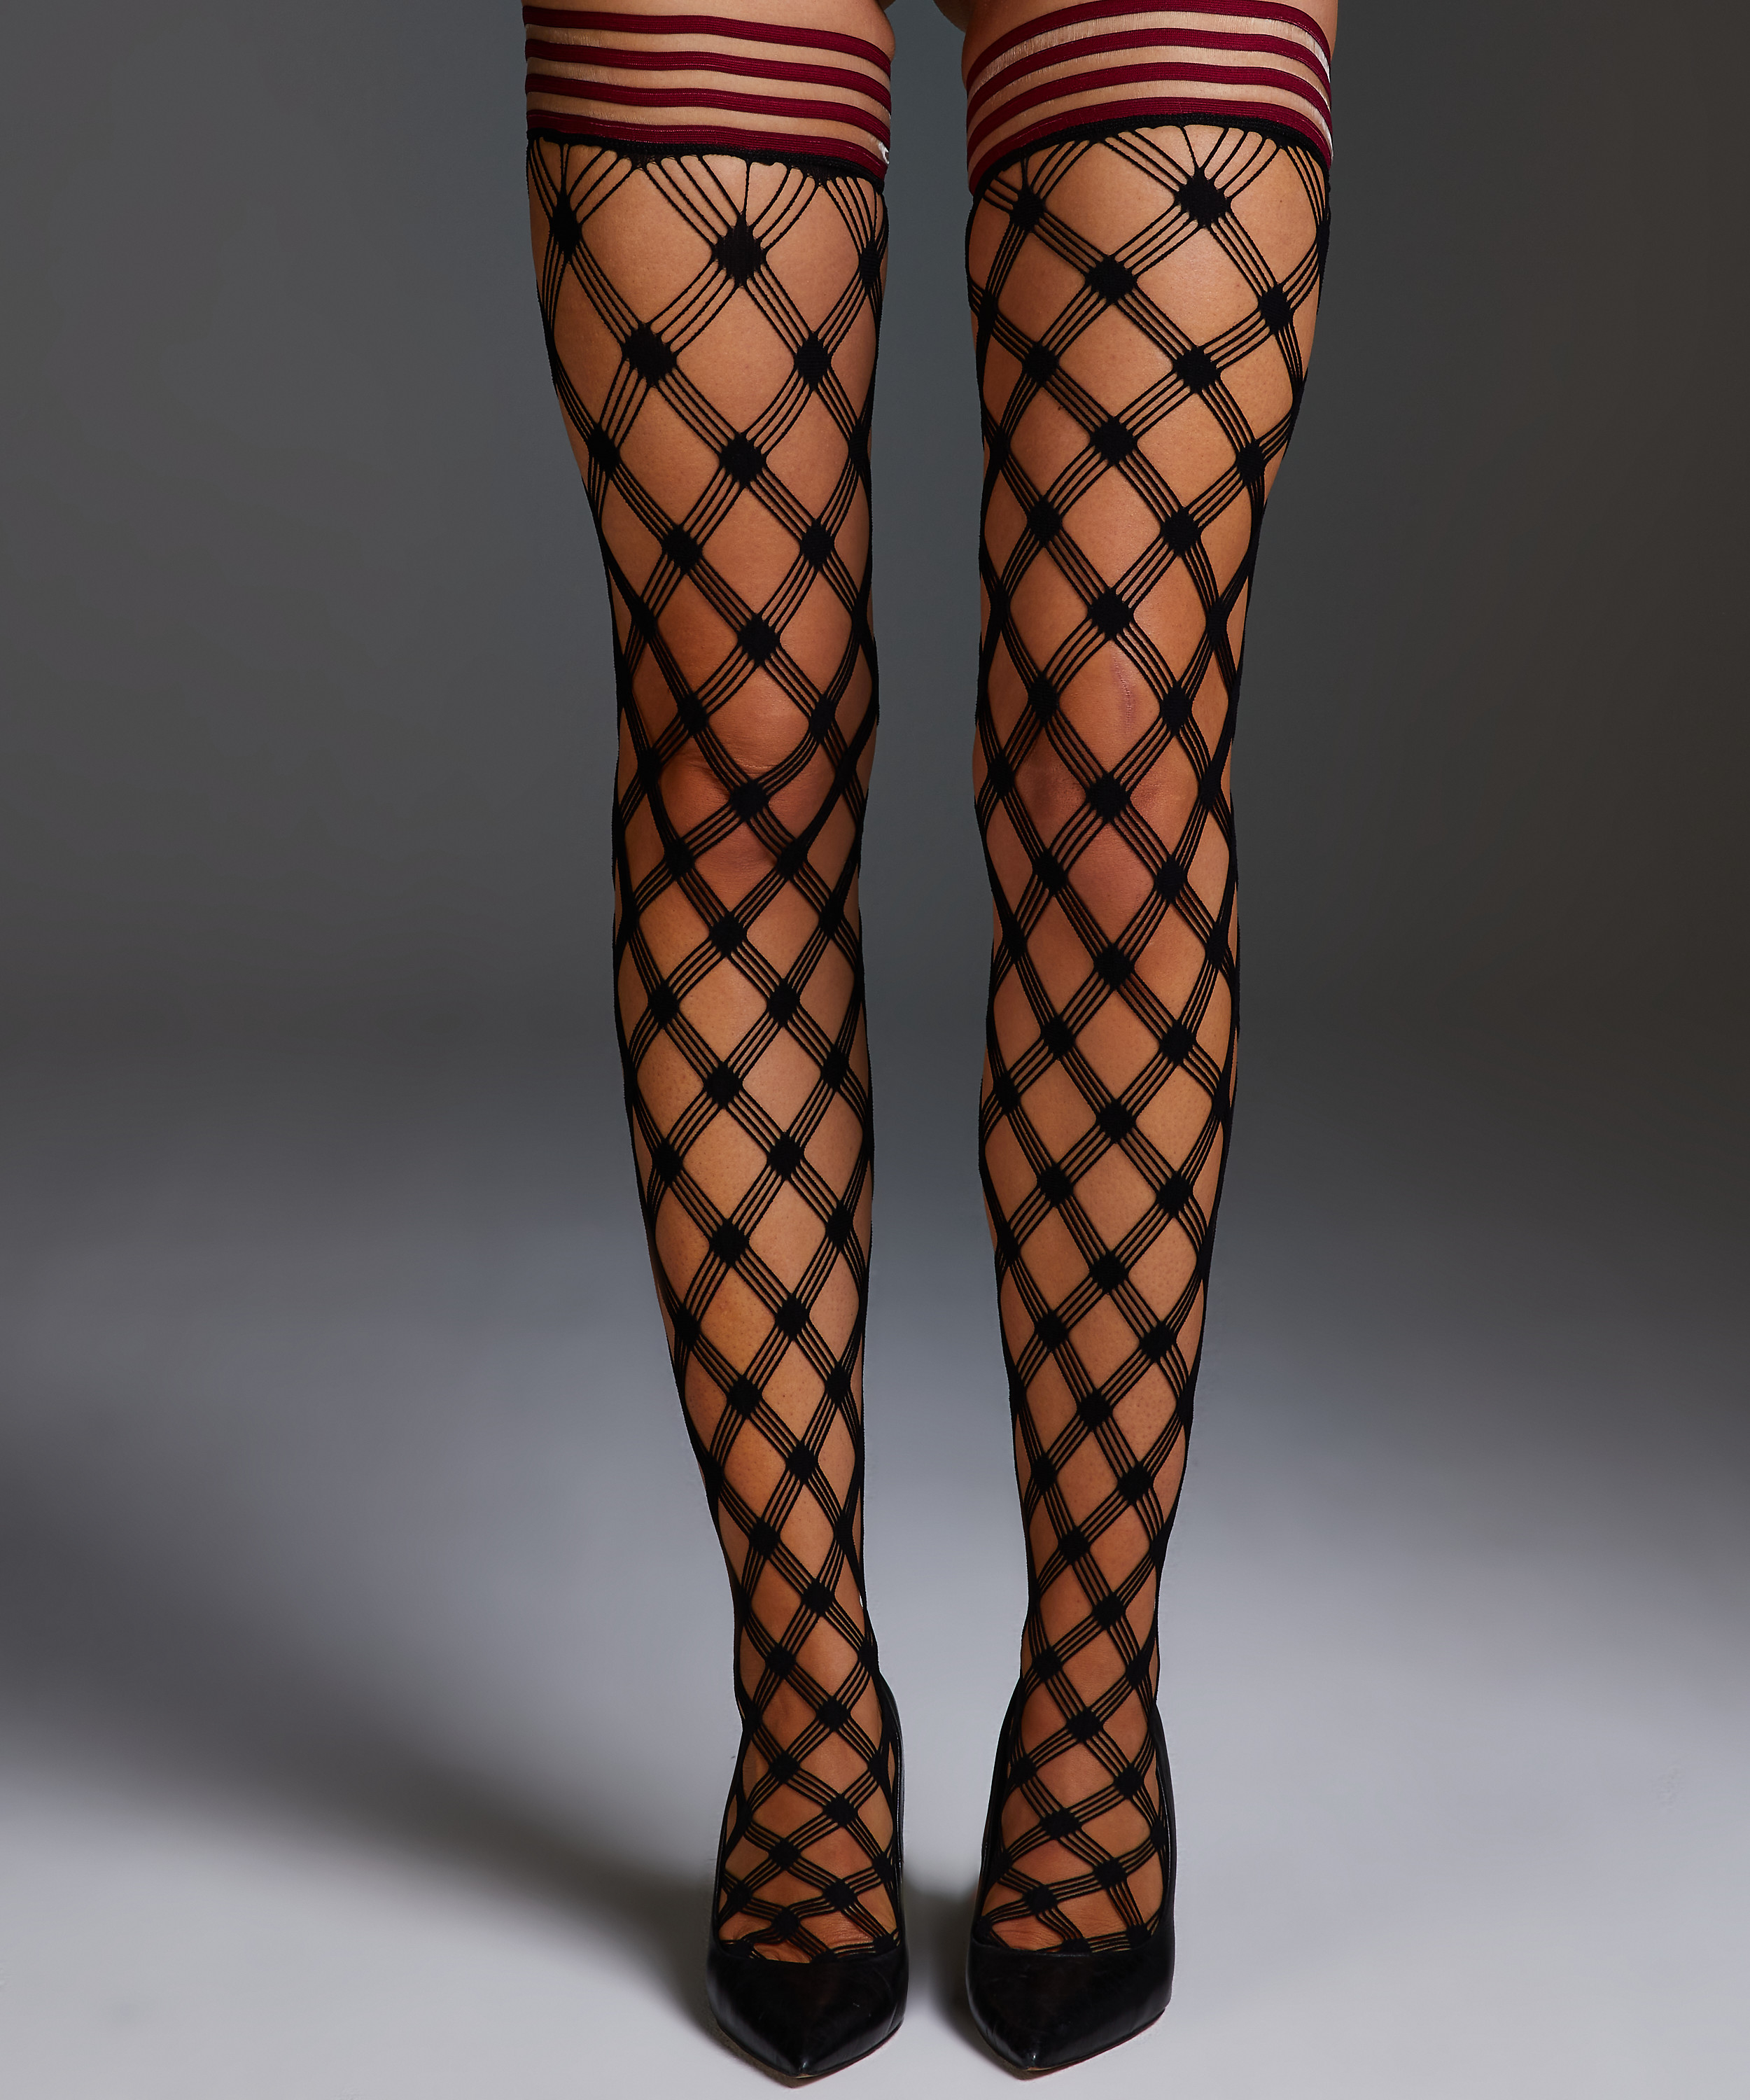 Stay-up Private Fishnet Crystal, Rood, main